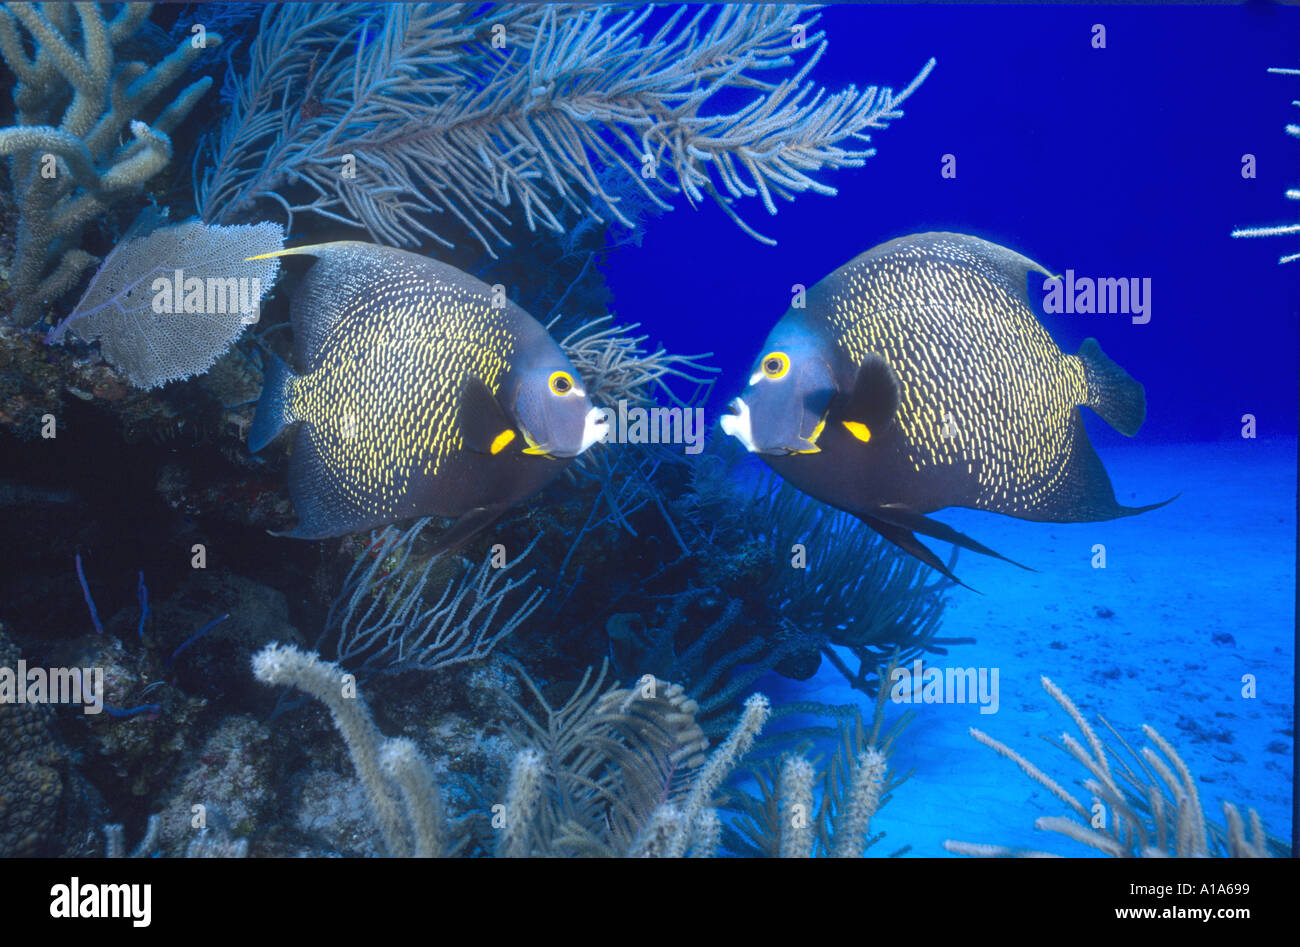 Angel fish couple, underwater, Grand Cayman, ocean, sea, scuba, diving, marine life, sea life, blue water, Cayman Islands, two - Stock Image